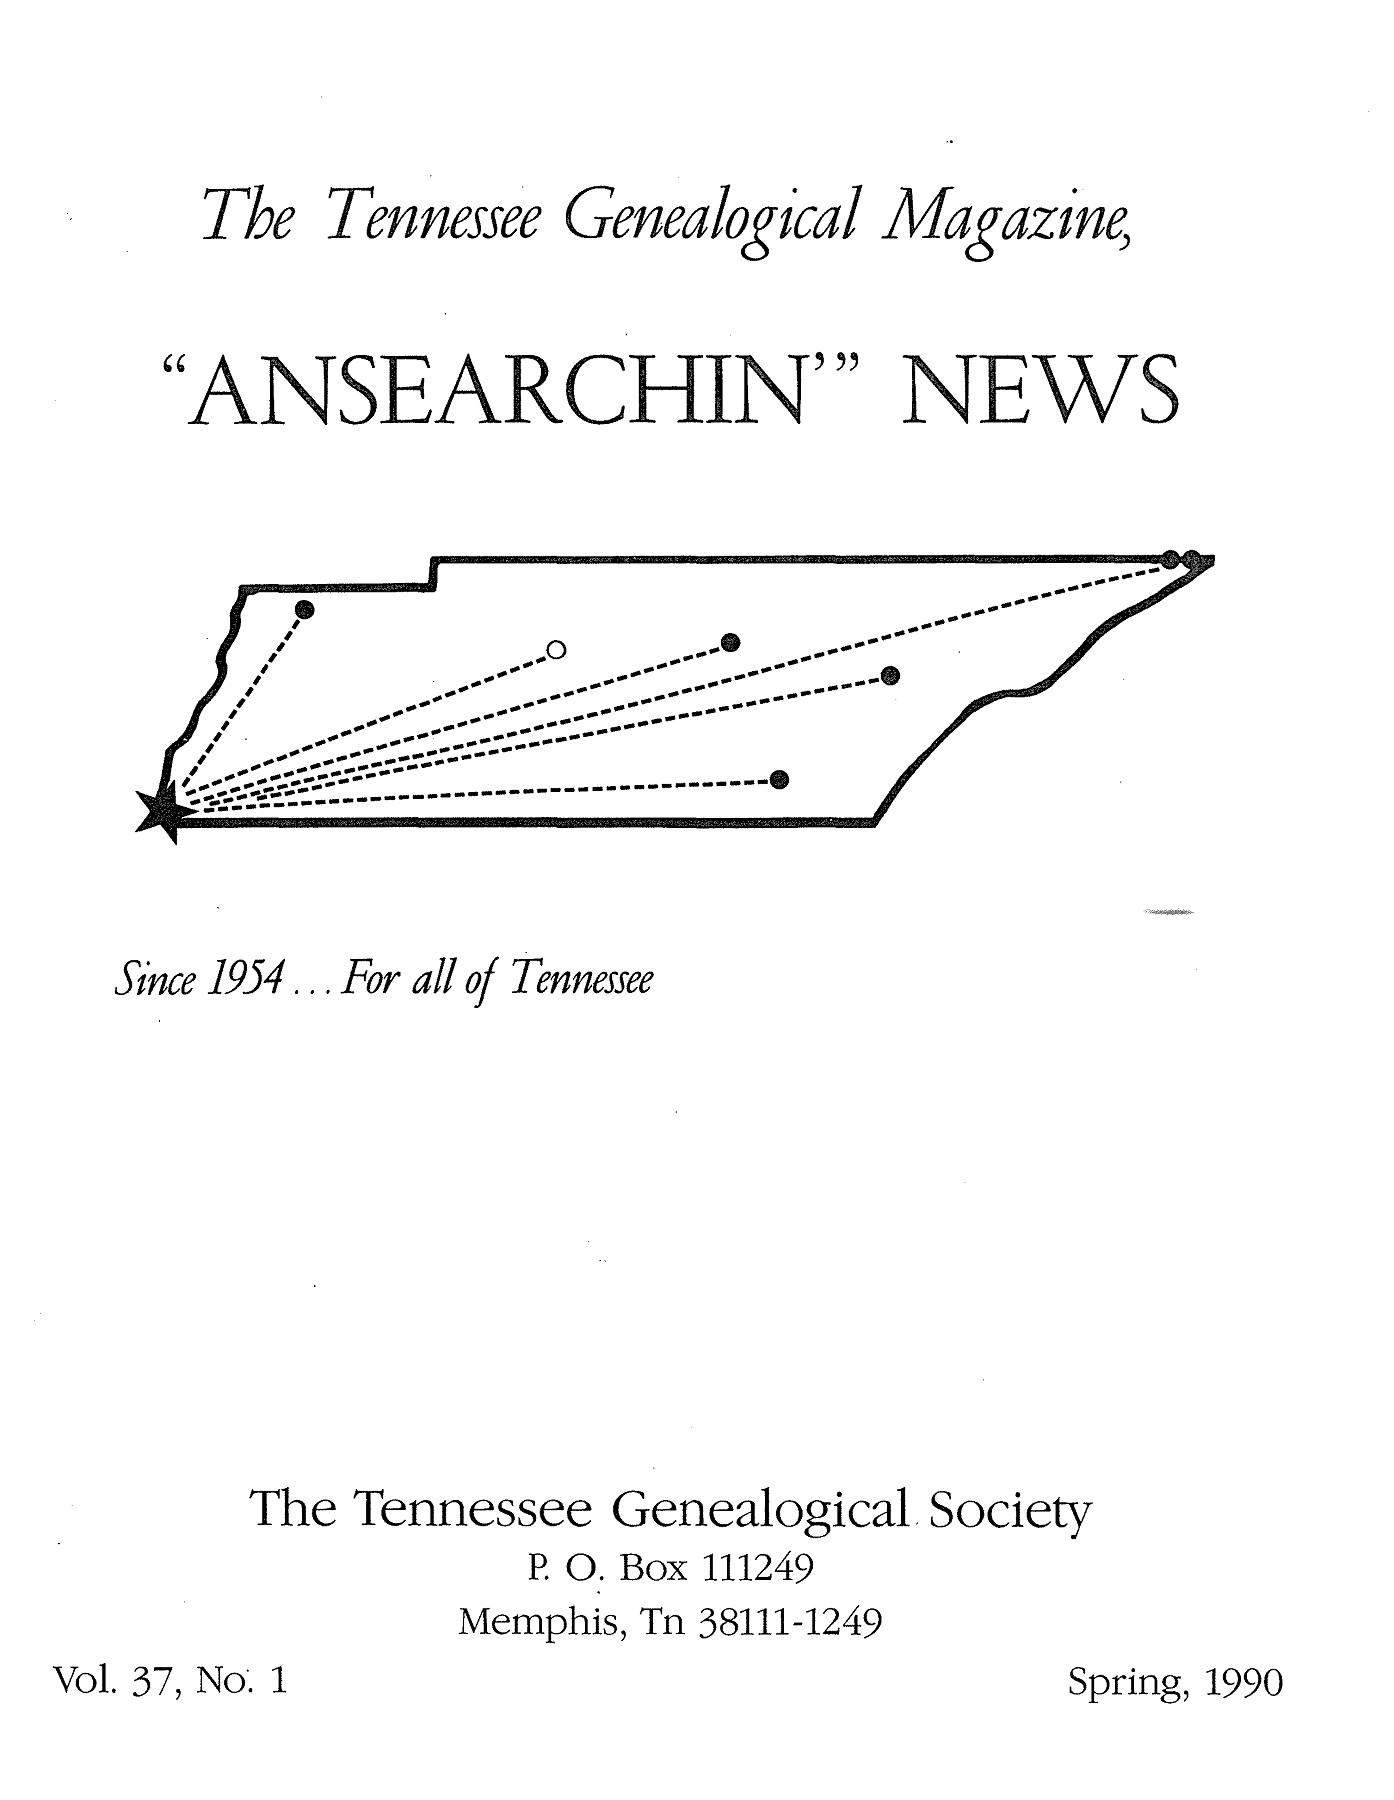 The Tennessee Genealogical Magazine